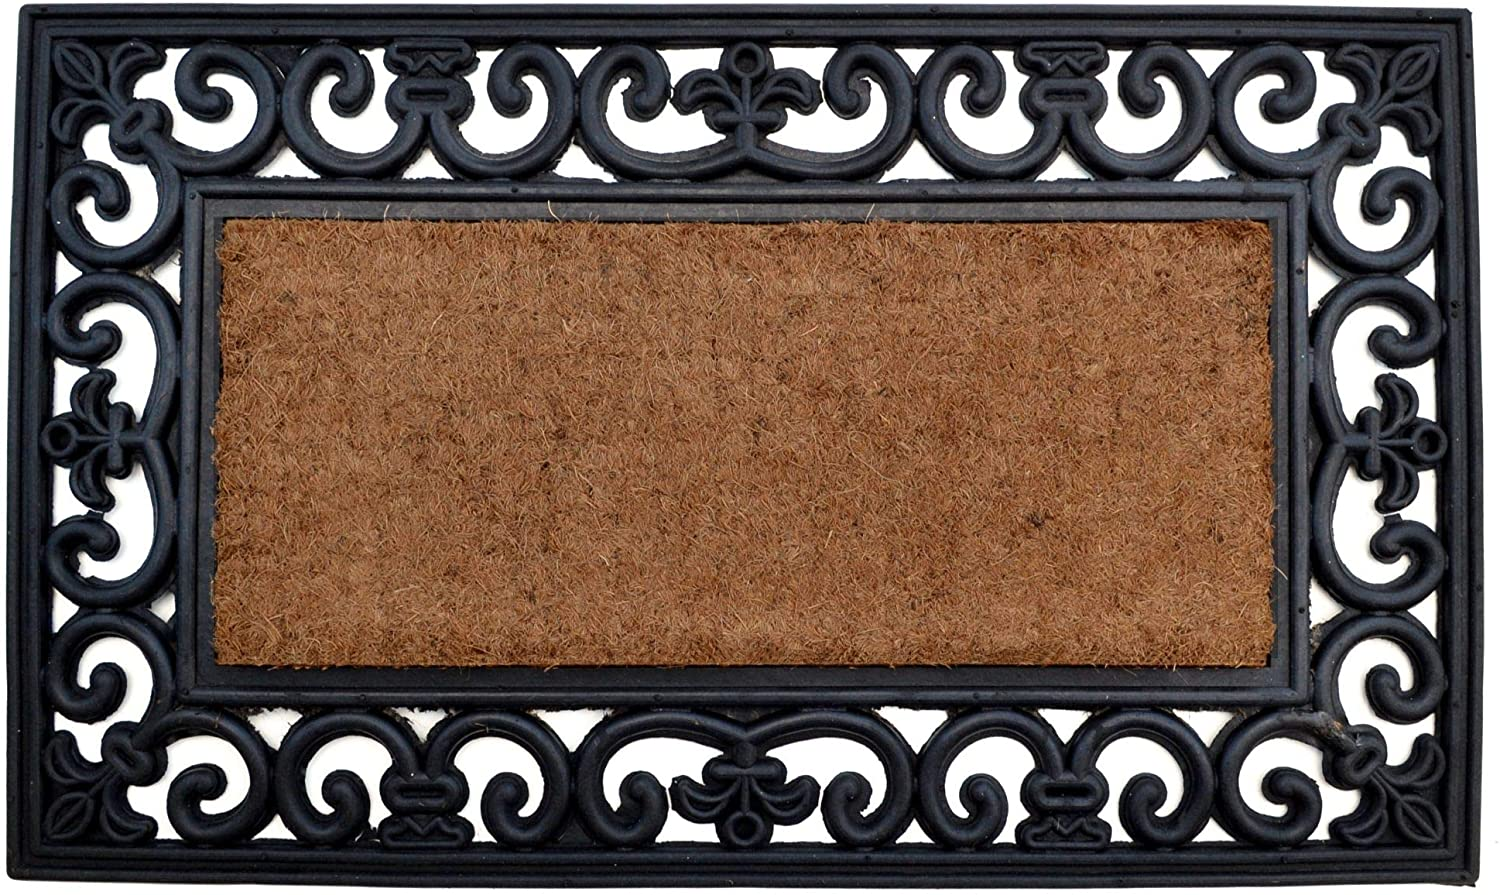 Brown and Black Rectangular Skid Free Coir Doormat with Country Rectangle Design 30